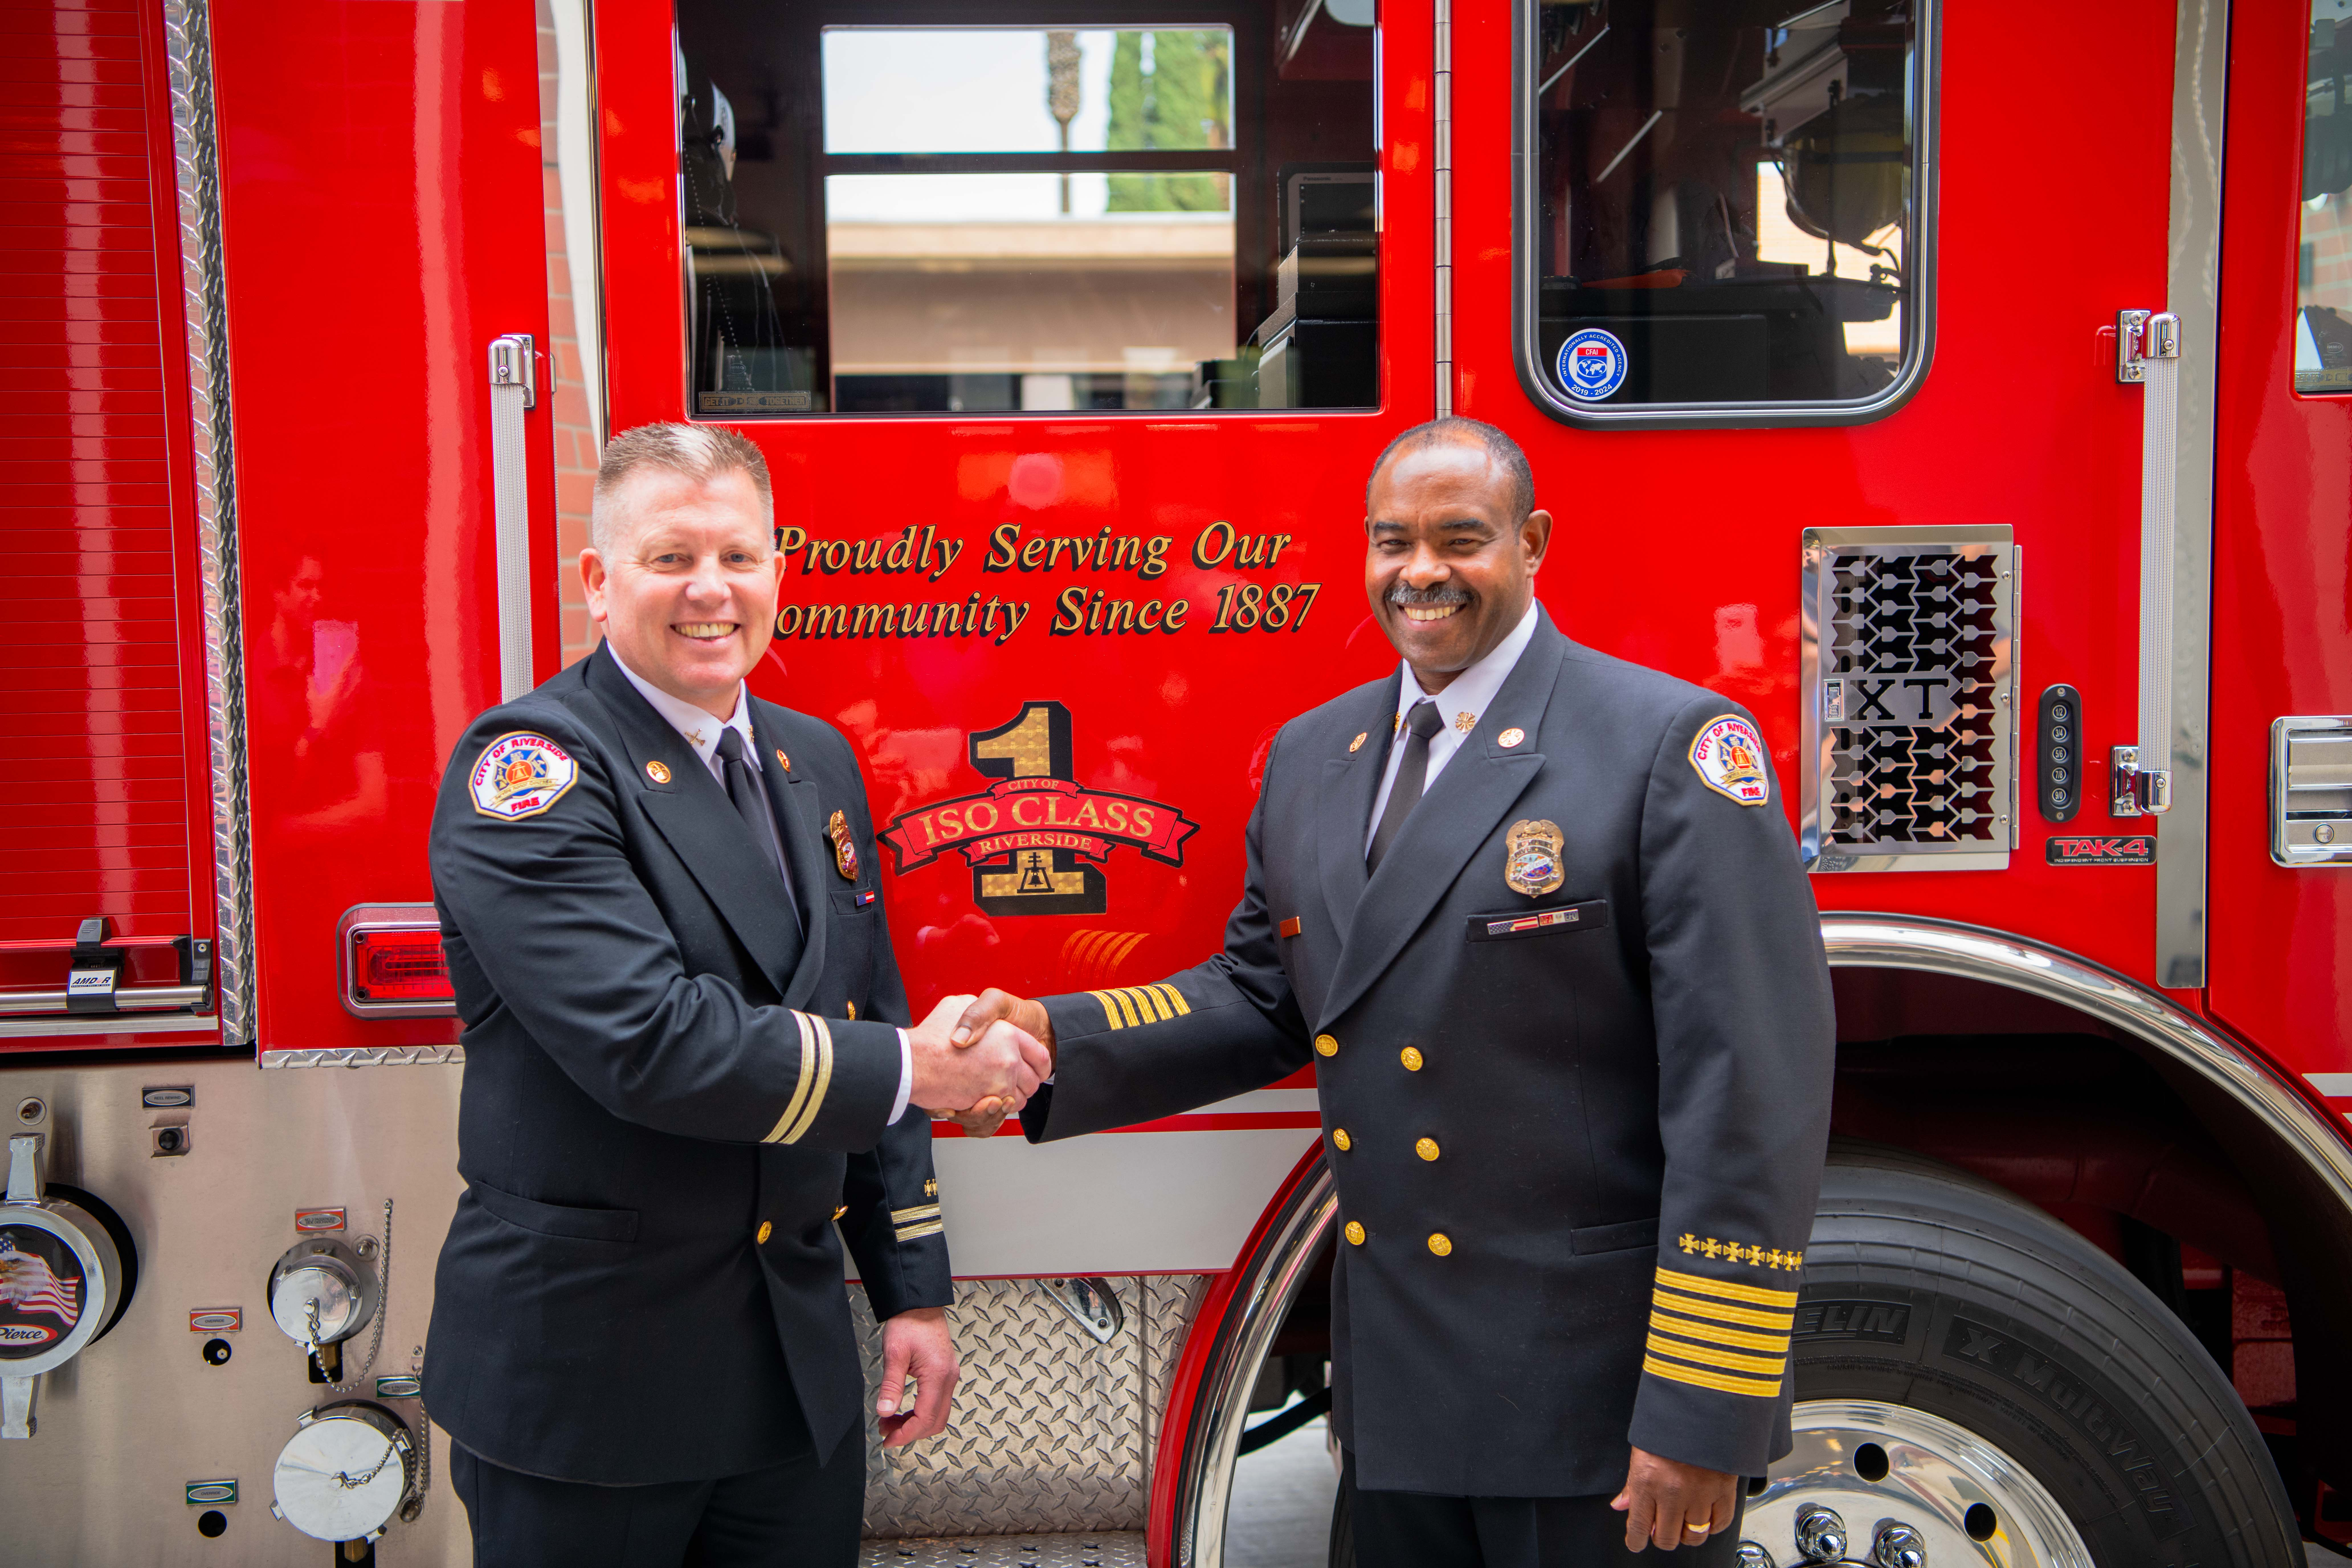 Chief Moore shaking hands in front of a fire engine with Chief Gooch